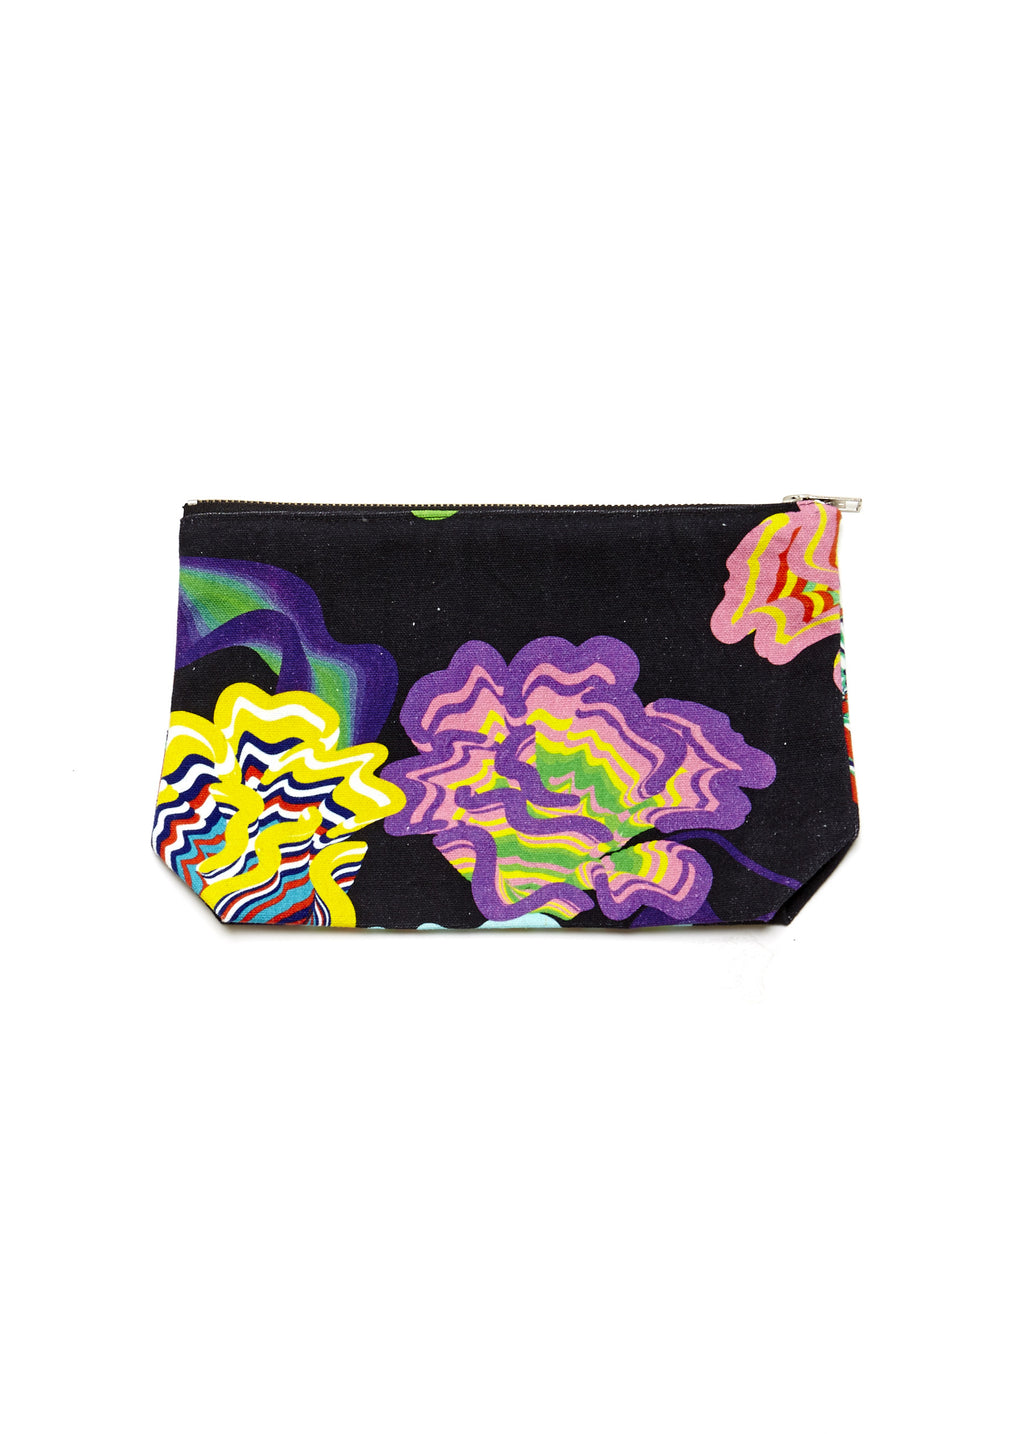 3D Purse (Black Flower)